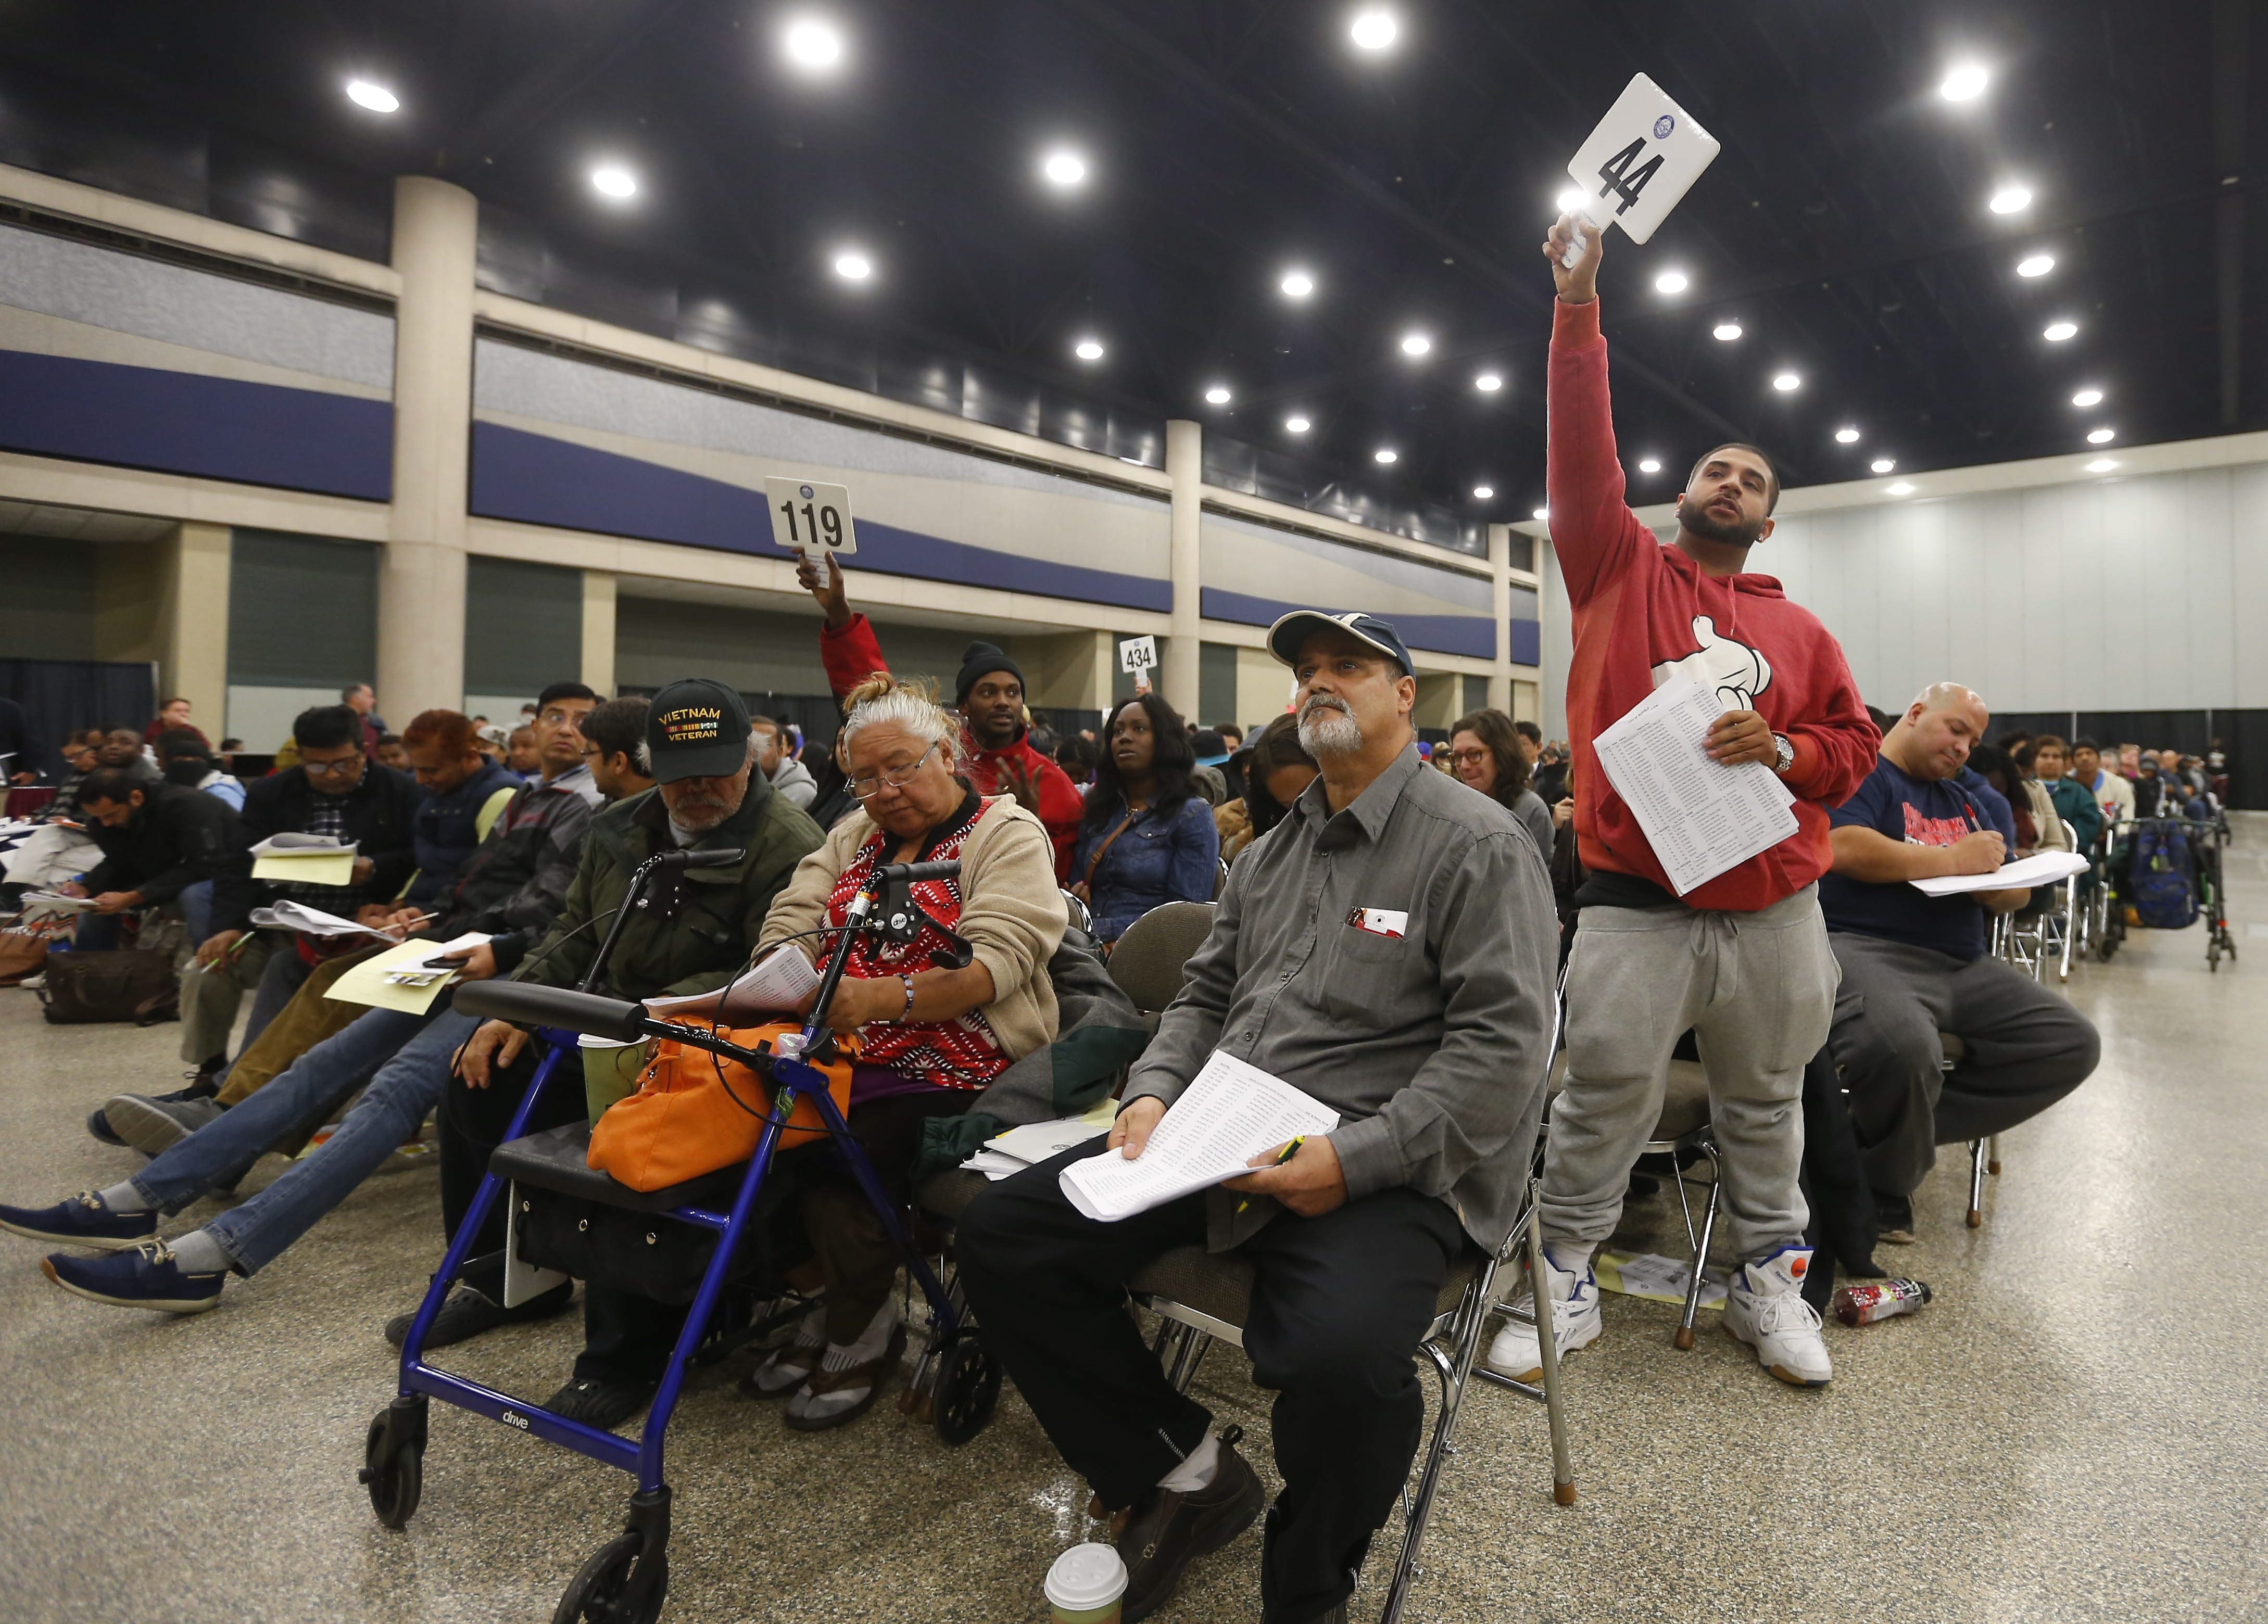 Activity is brisk at city's annual tax foreclosure auction in Buffalo Niagara Convention Center as only a few empty chairs could be seen among 1,200 set up for the event. The event traditionally attracts 400 to 500 people each day. See a photo gallery at buffalonews.com.